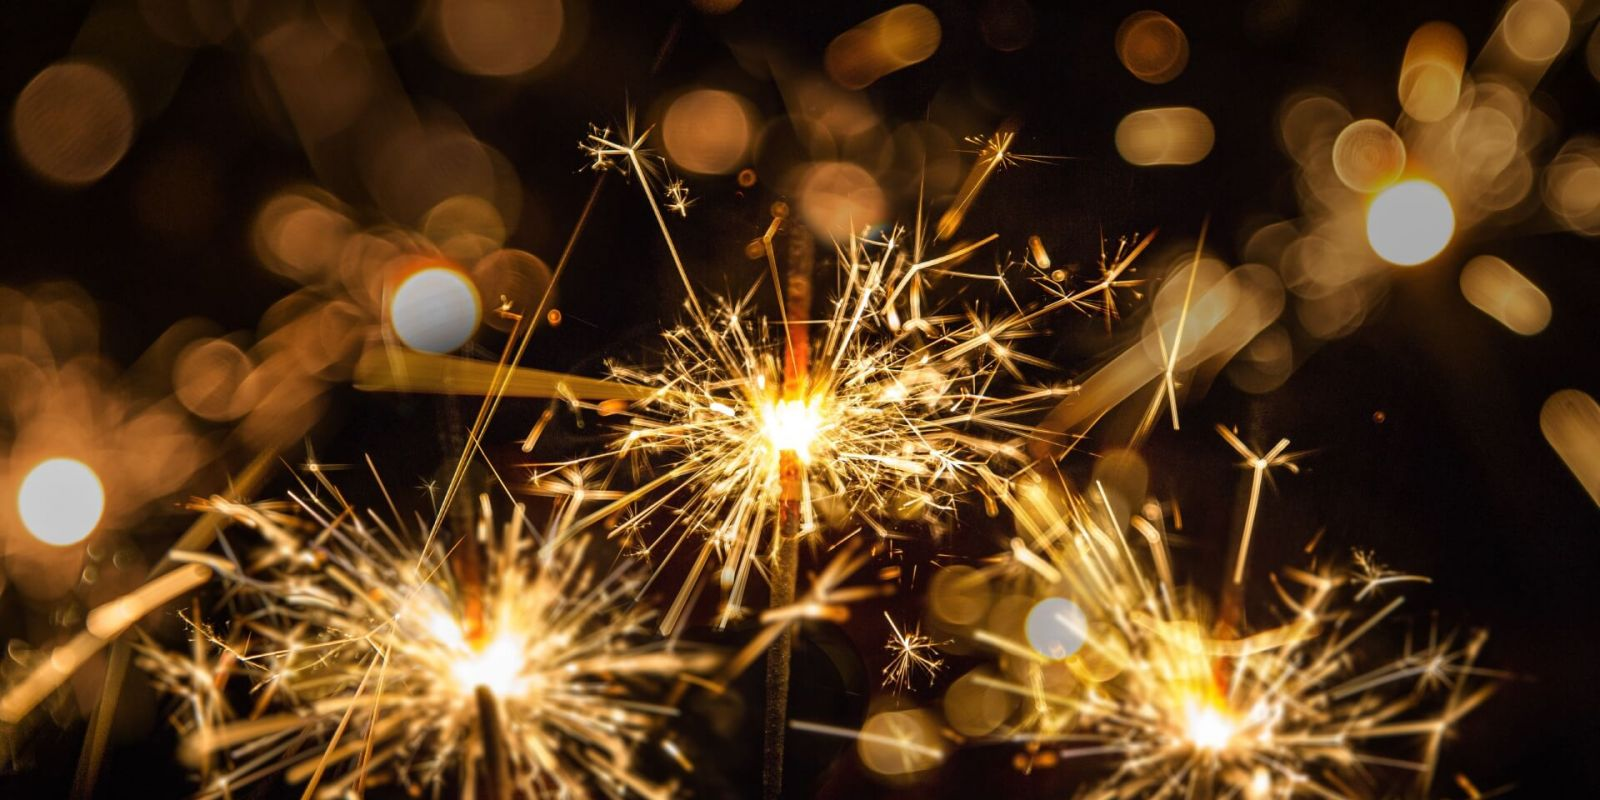 https://www.talamare.com/medias/Sparklers for celebrating a special occasion on a private event yacht charter